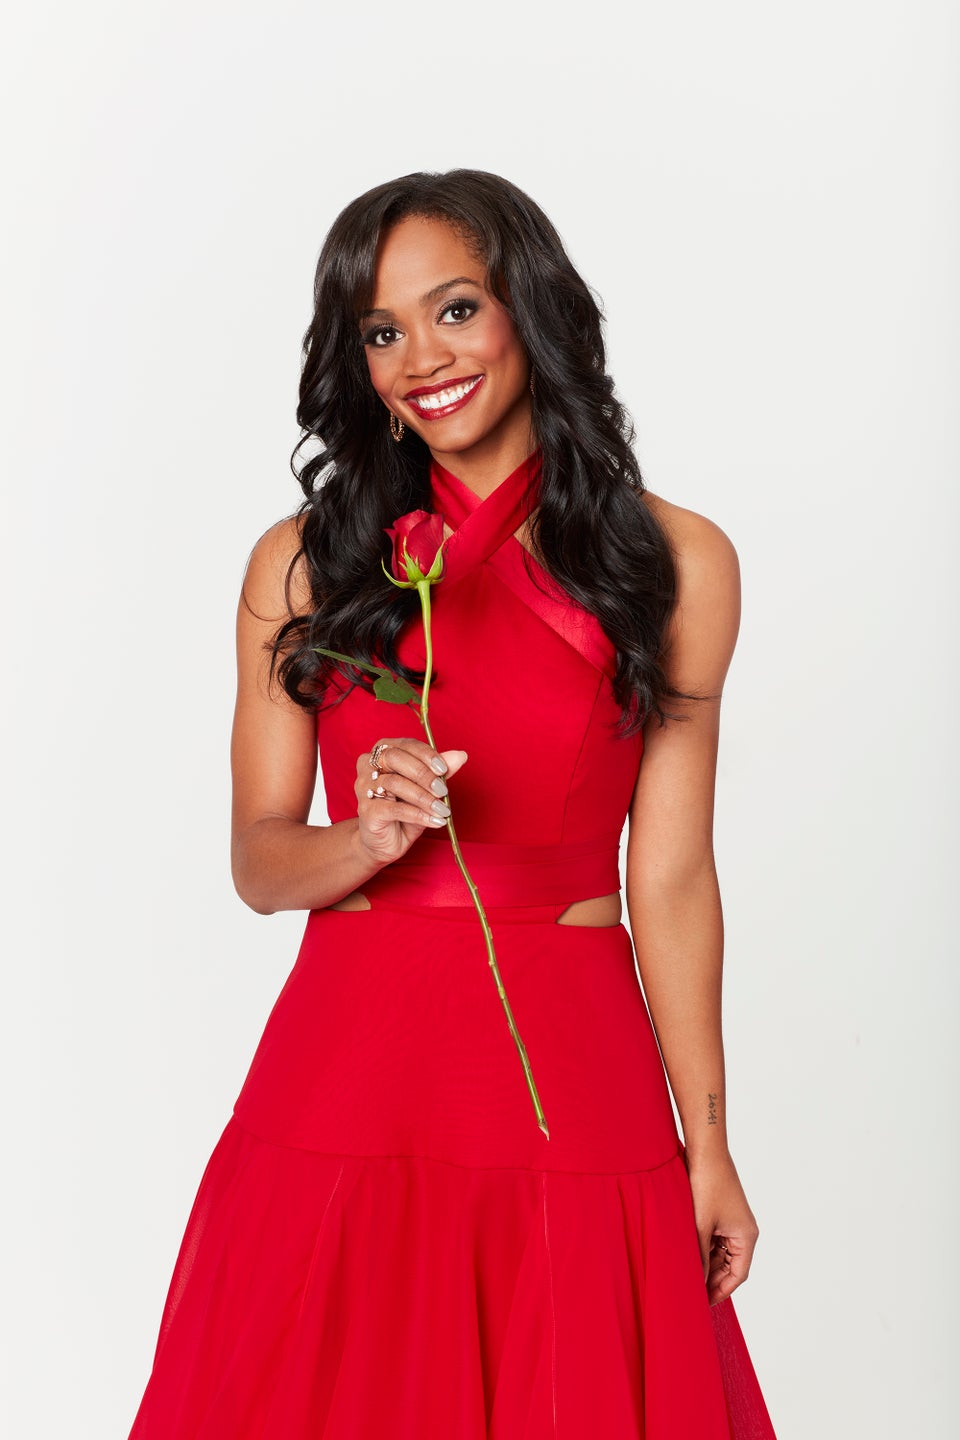 Bachelorette Rachel Lindsay On Being Open to Interracial Dating: 'I Was Closing Myself Off to Great Men'